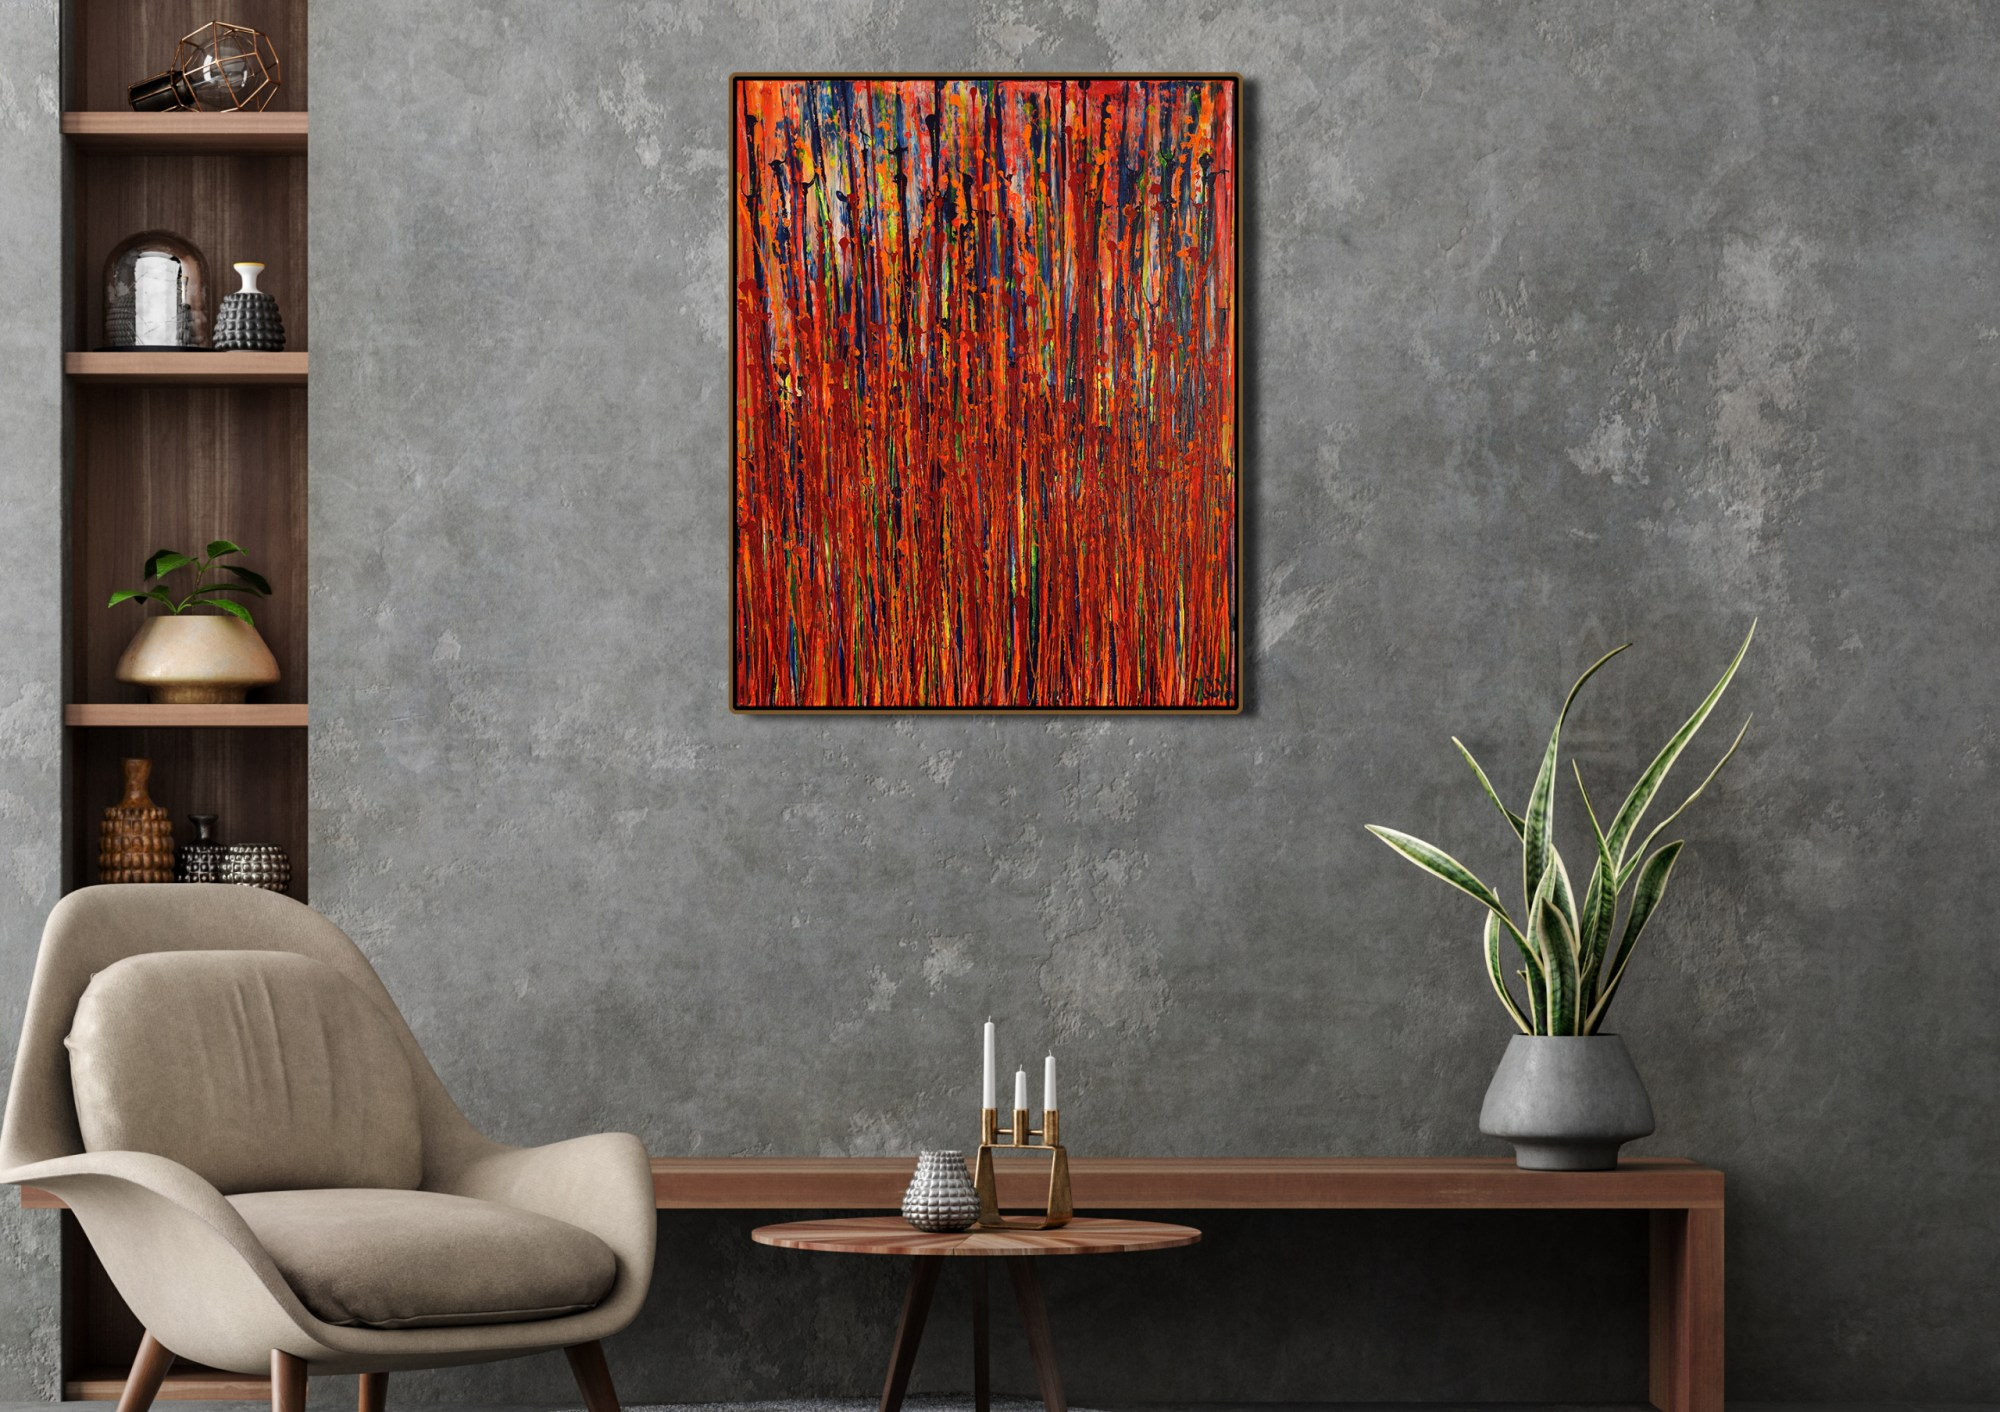 Room example (framed) / Panorama Astratto 1 (2021) 24X30 Inches / Artist: Nestor Toro